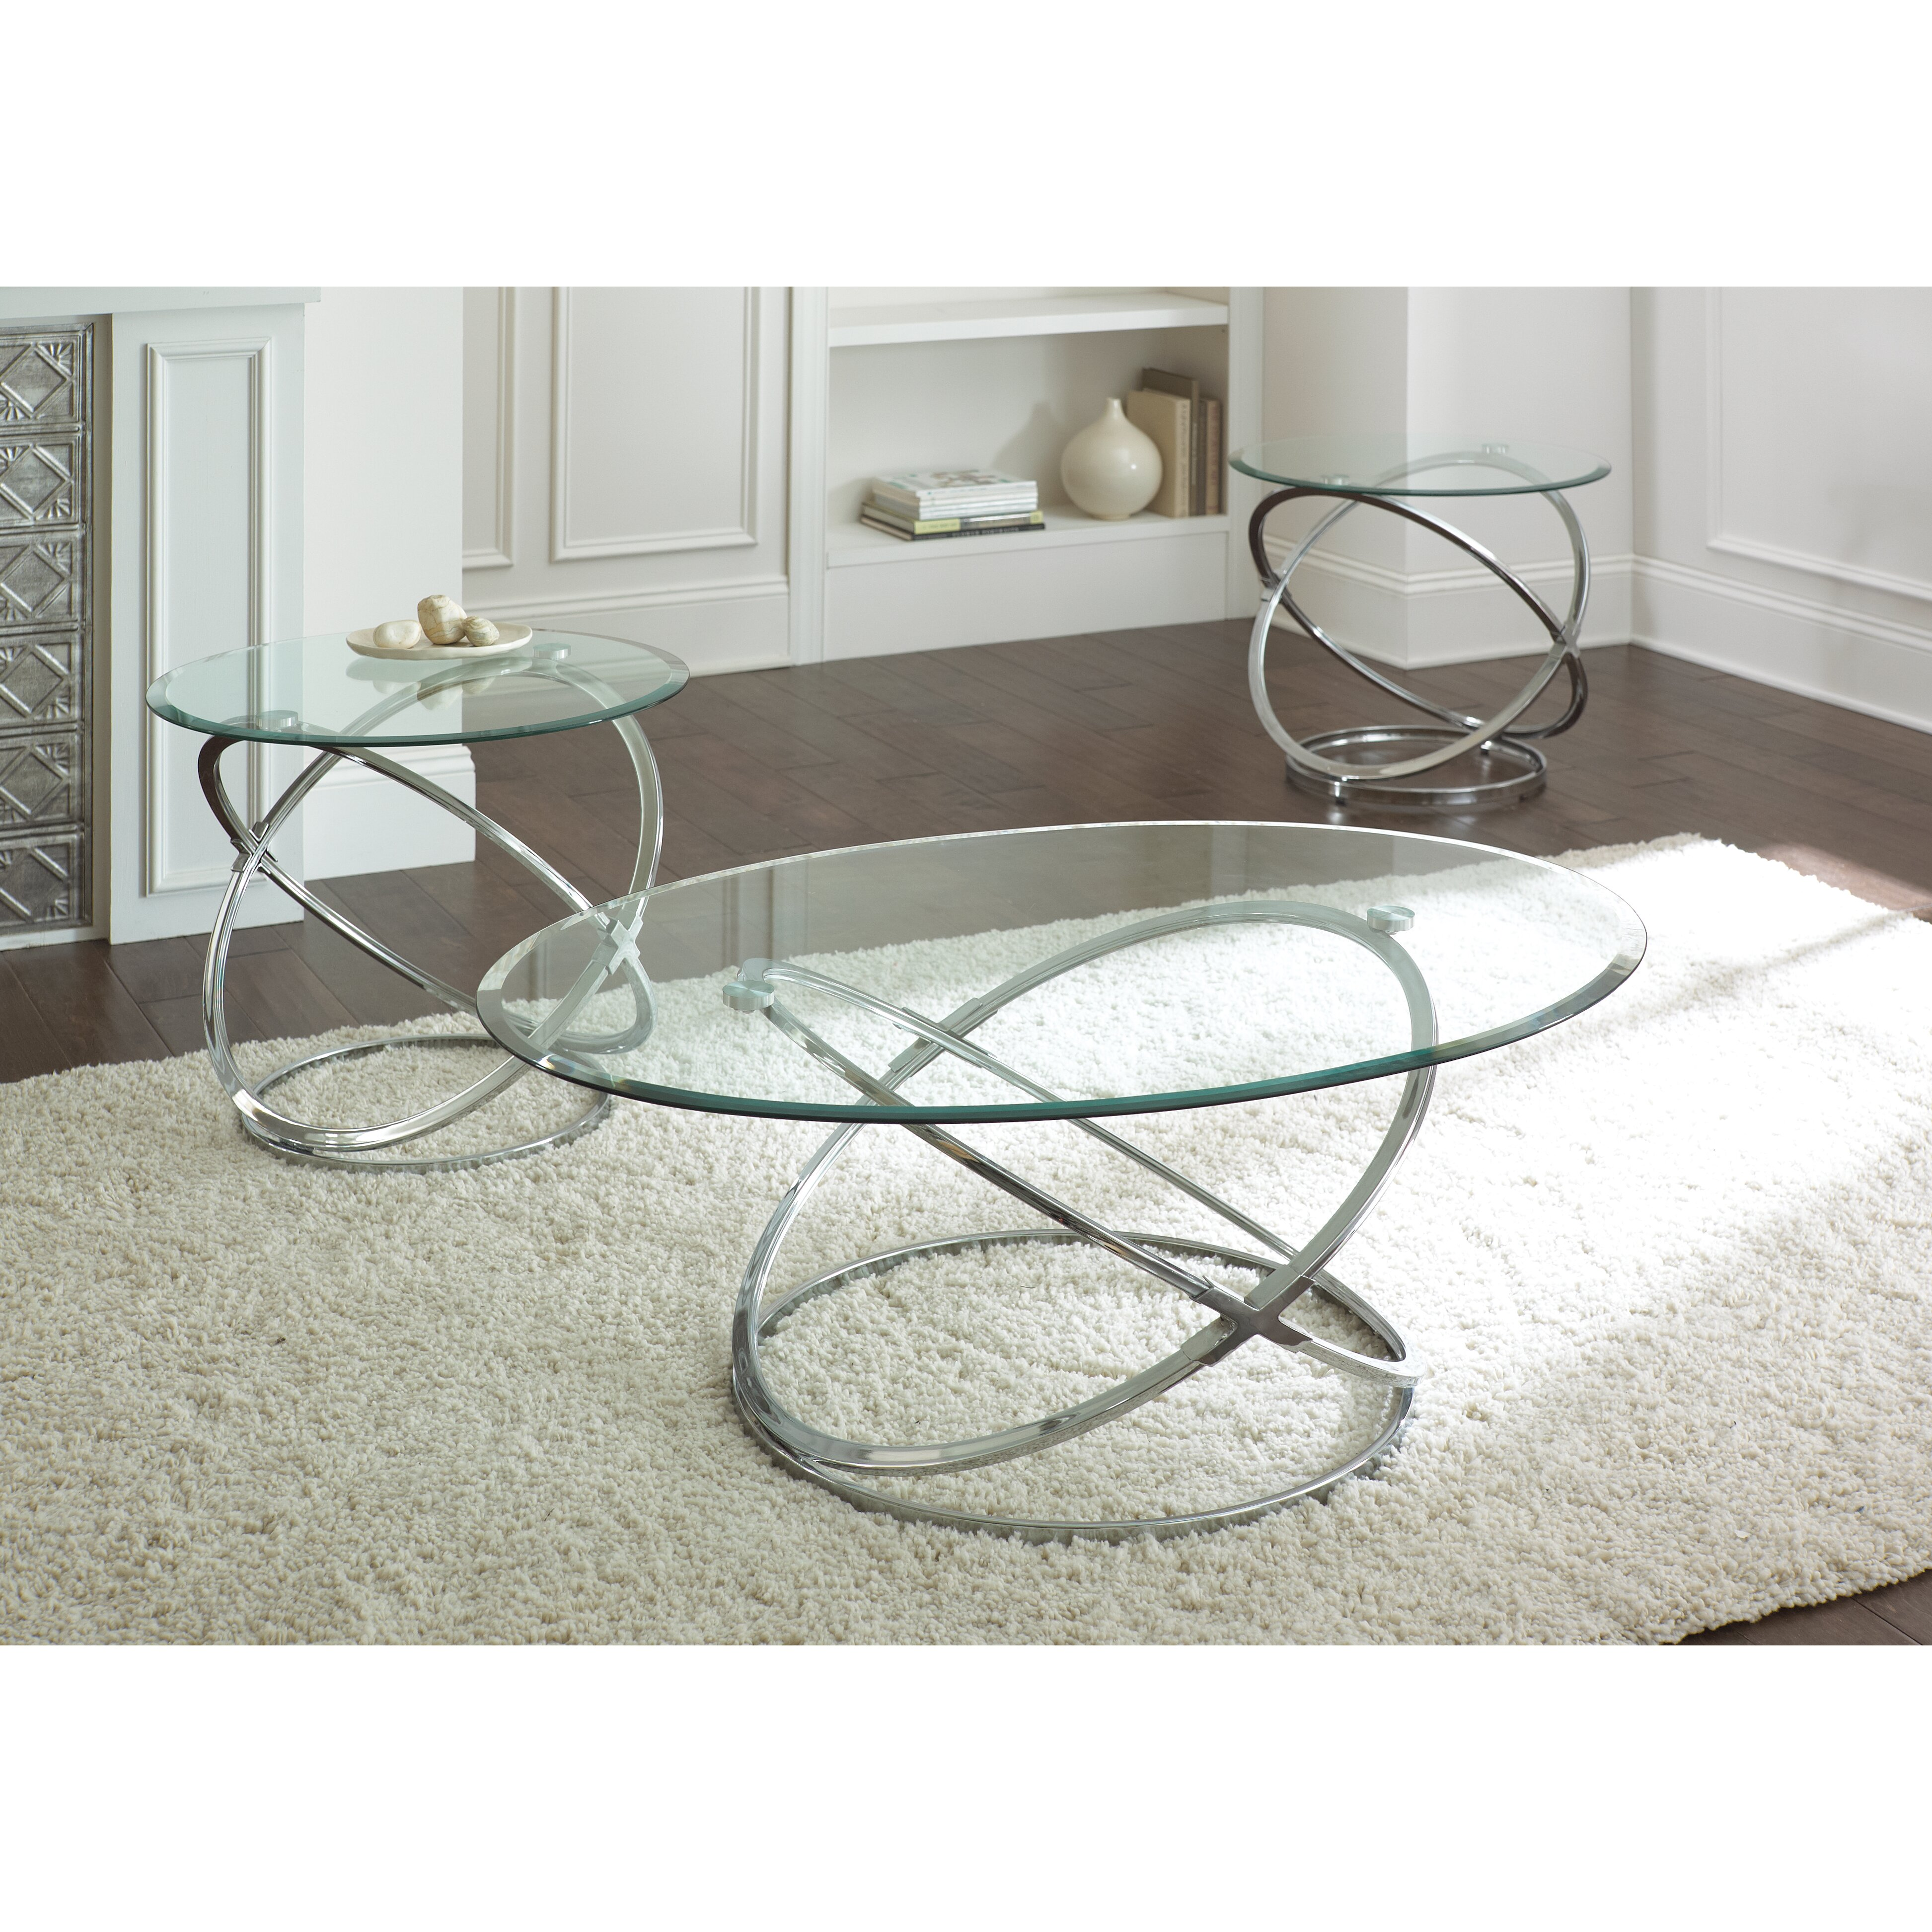 Steve Silver Furniture Orion Coffee Table Set & Reviews